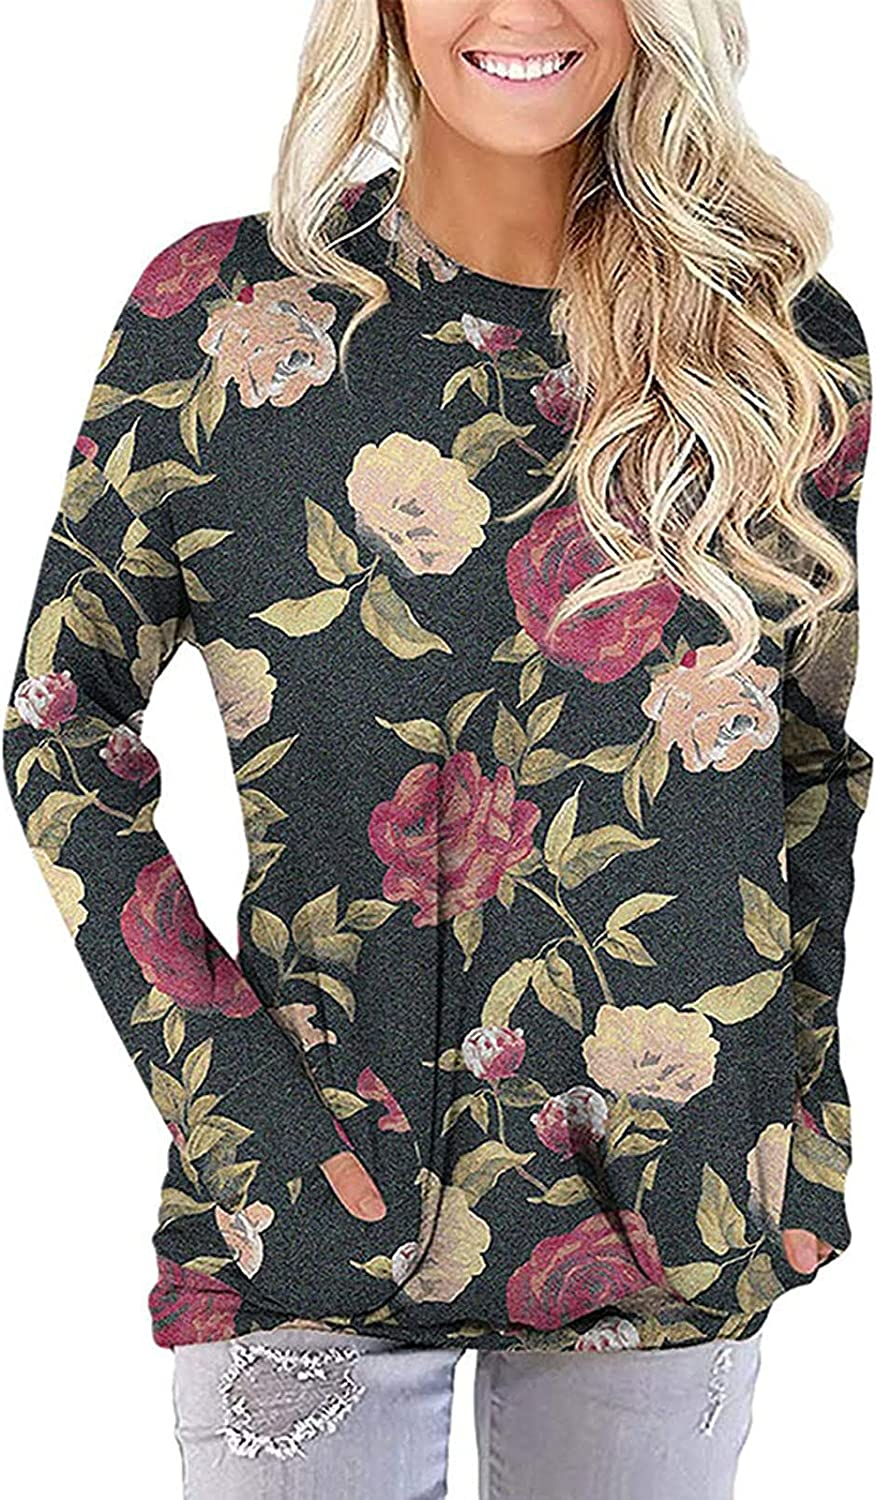 Women Long Sleeve Flower Print O-Neck Loose Pullover Tops Pockets Decorative Autumn Fashion Blouses Casual Tops